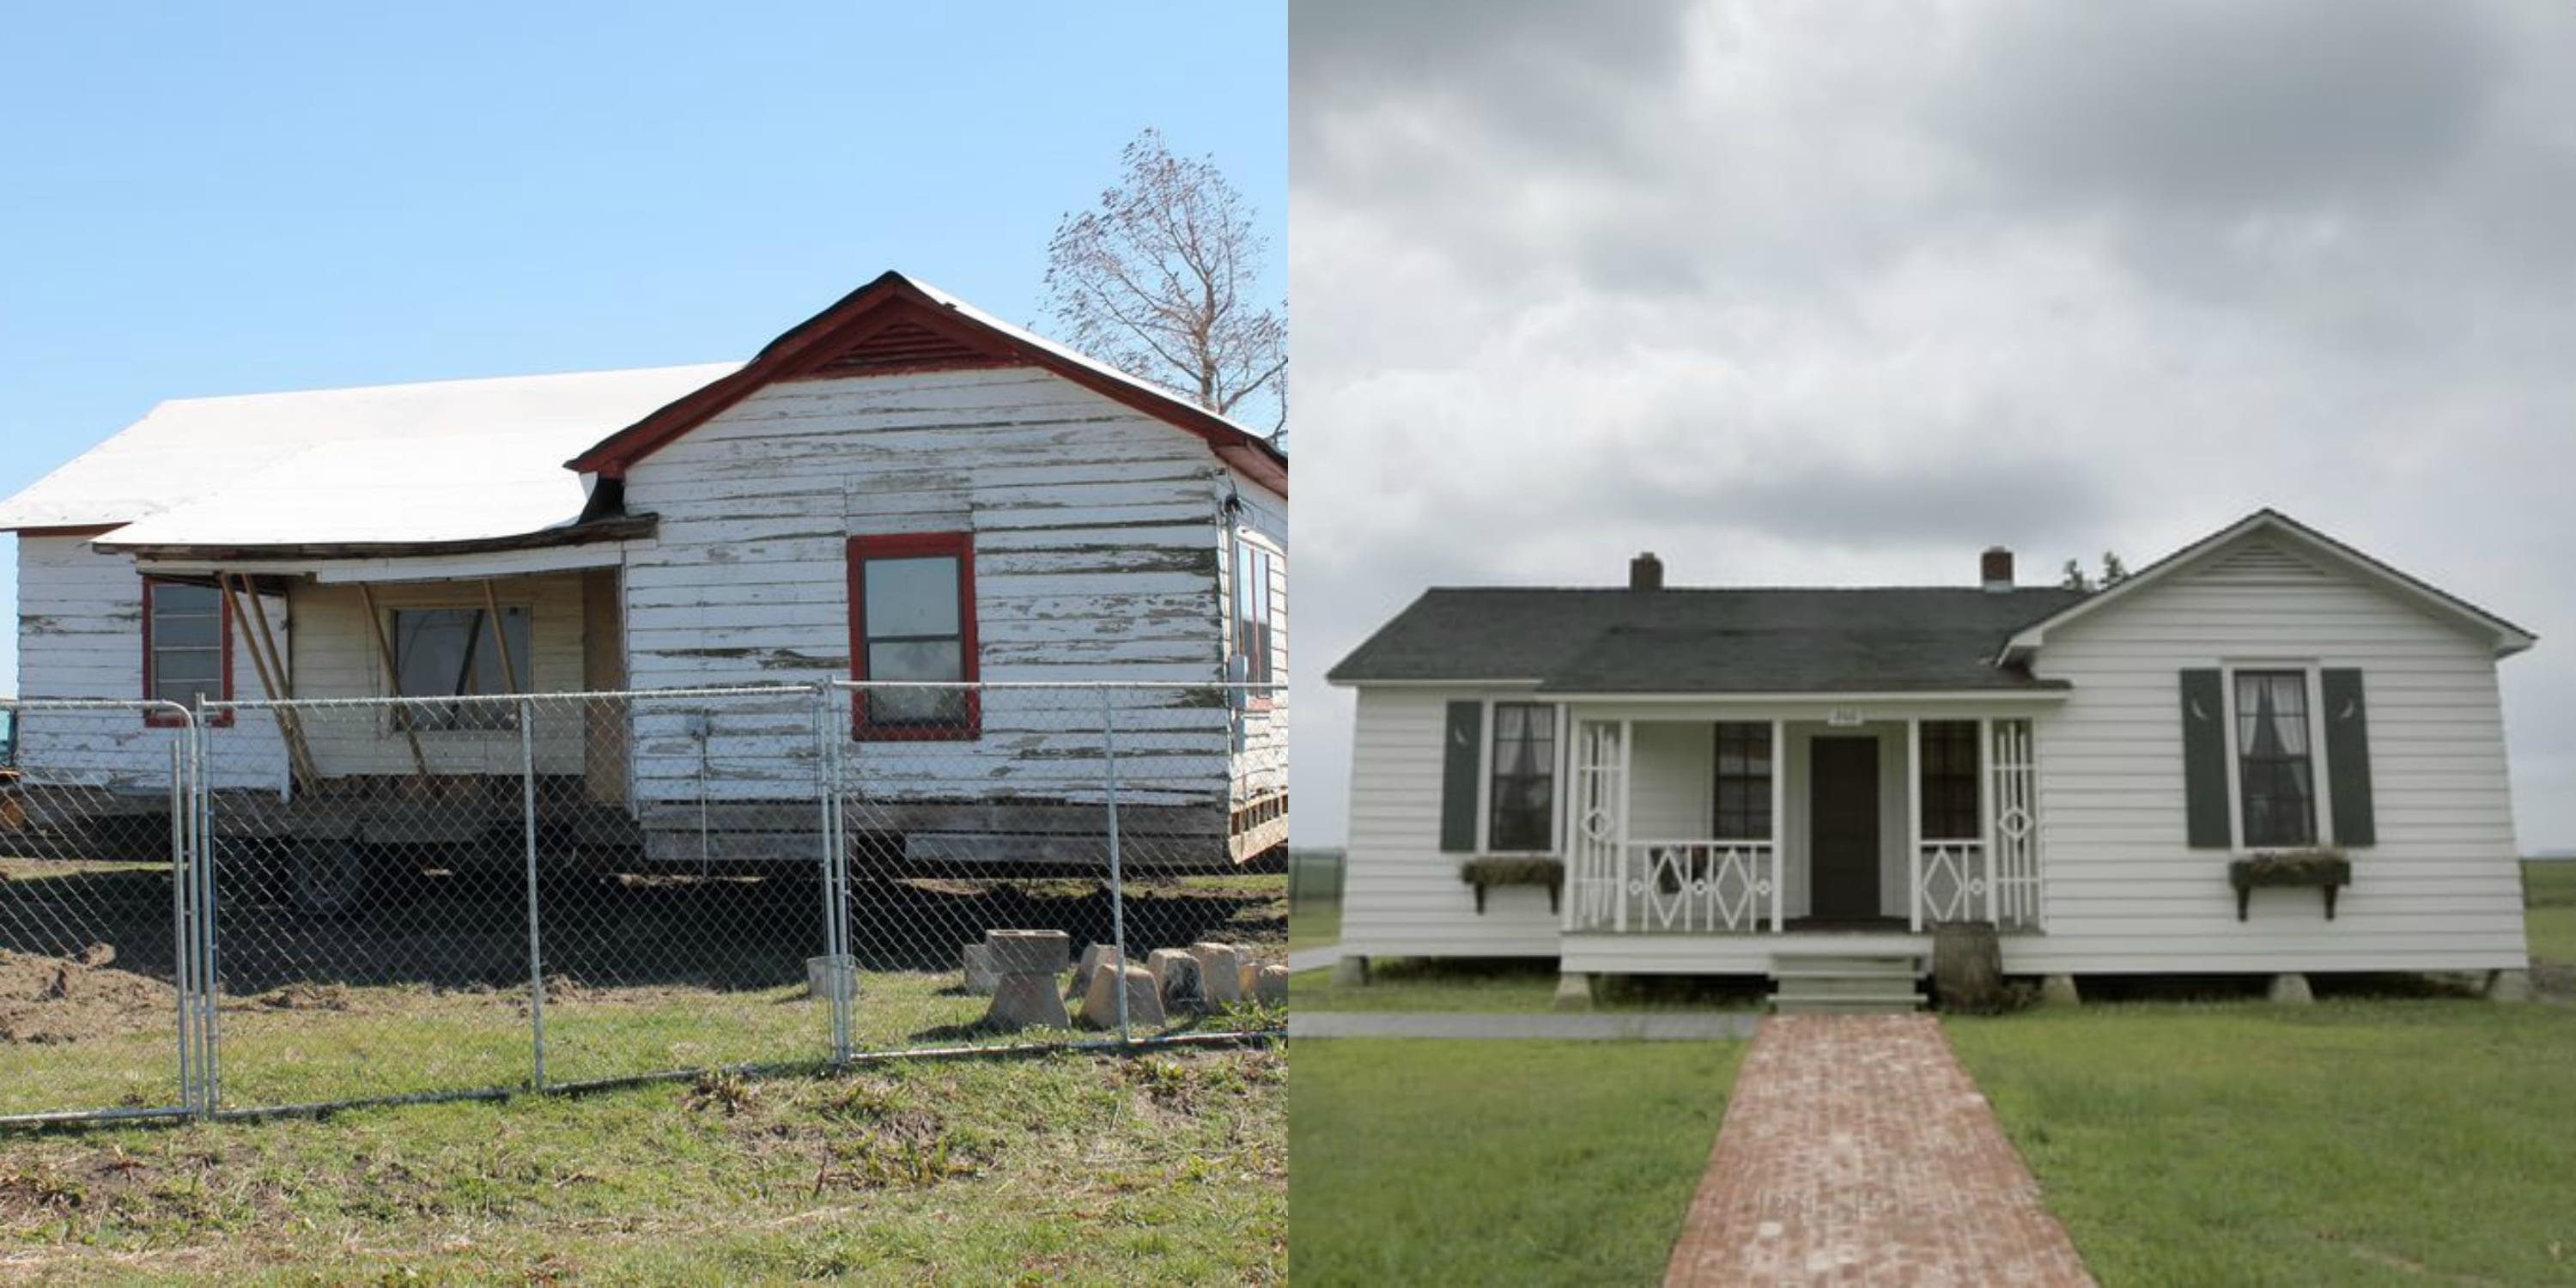 Johnny Cash's Childhood Home Added To National Register Of Historic Places